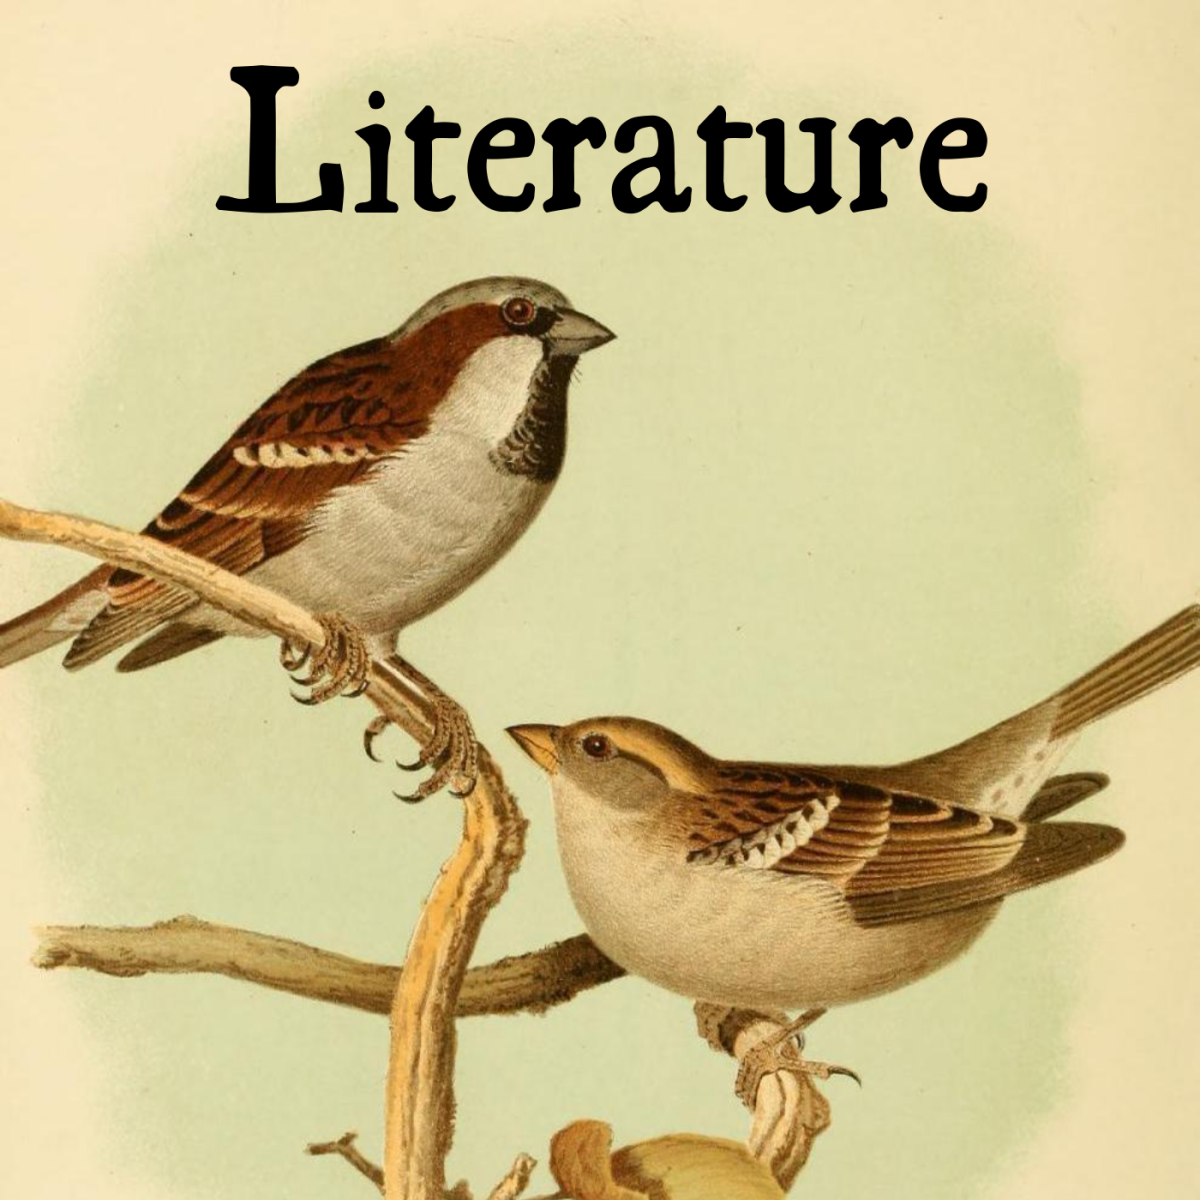 Sparrows have appeared in literature for centuries across a variety of genres.